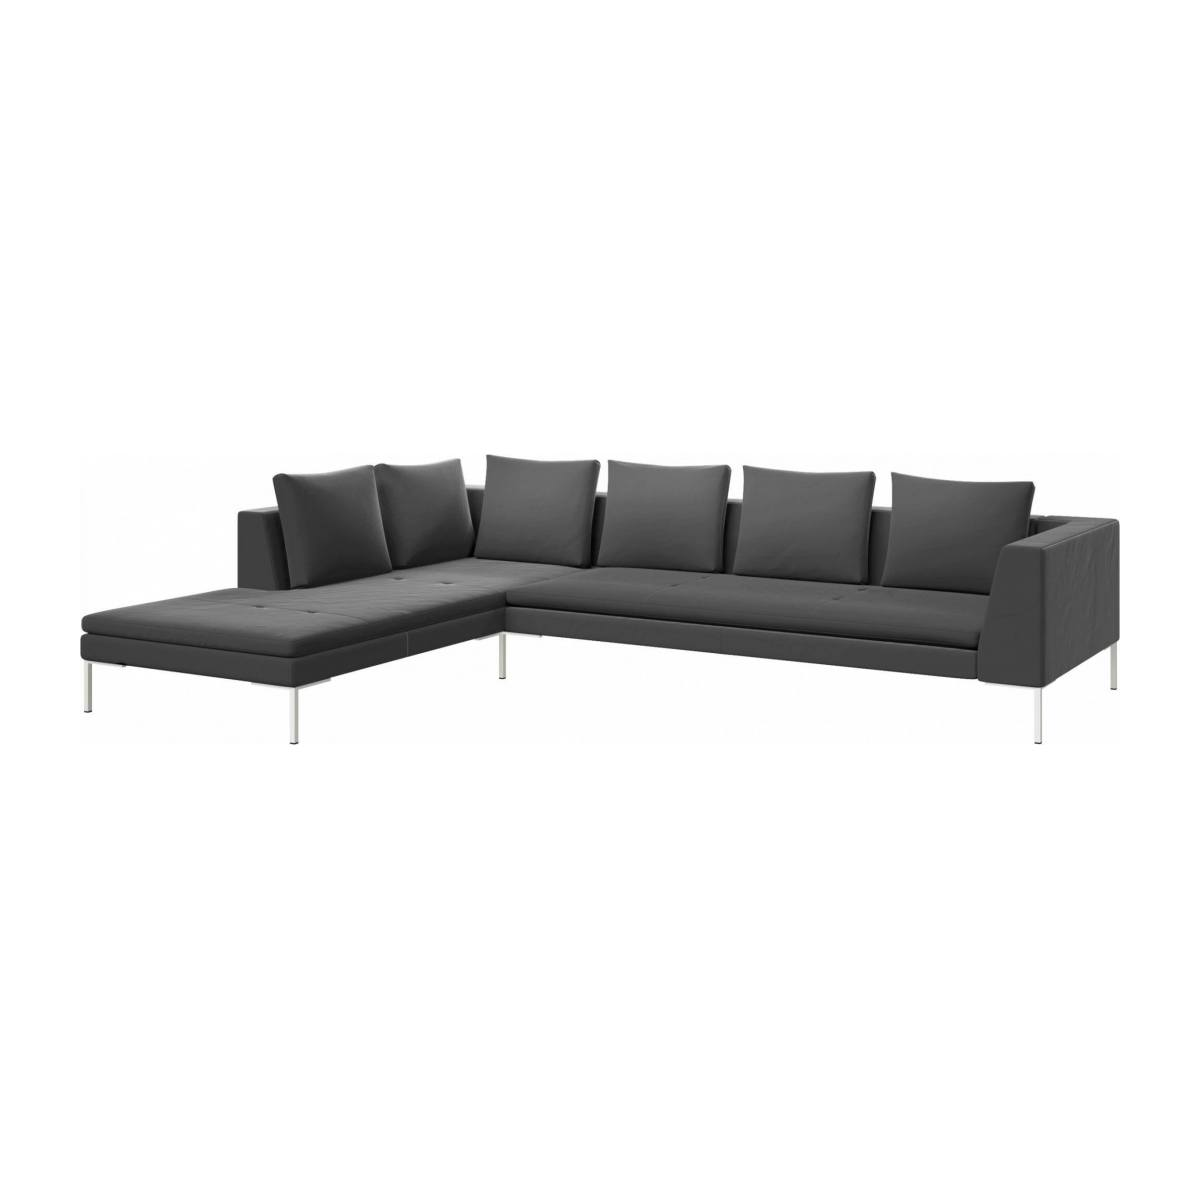 3 seater sofa with chaise longue on the left in Super Velvet fabric, silver grey  n°2